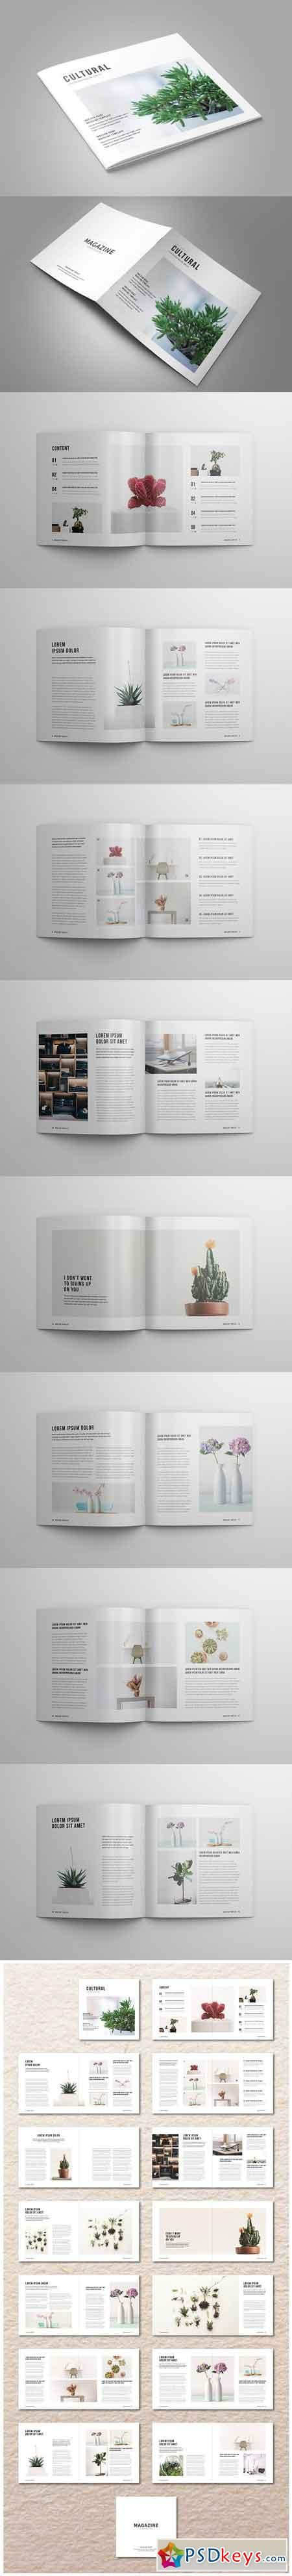 Square InDesign Magazine 2507374 | psd keys | Magazine